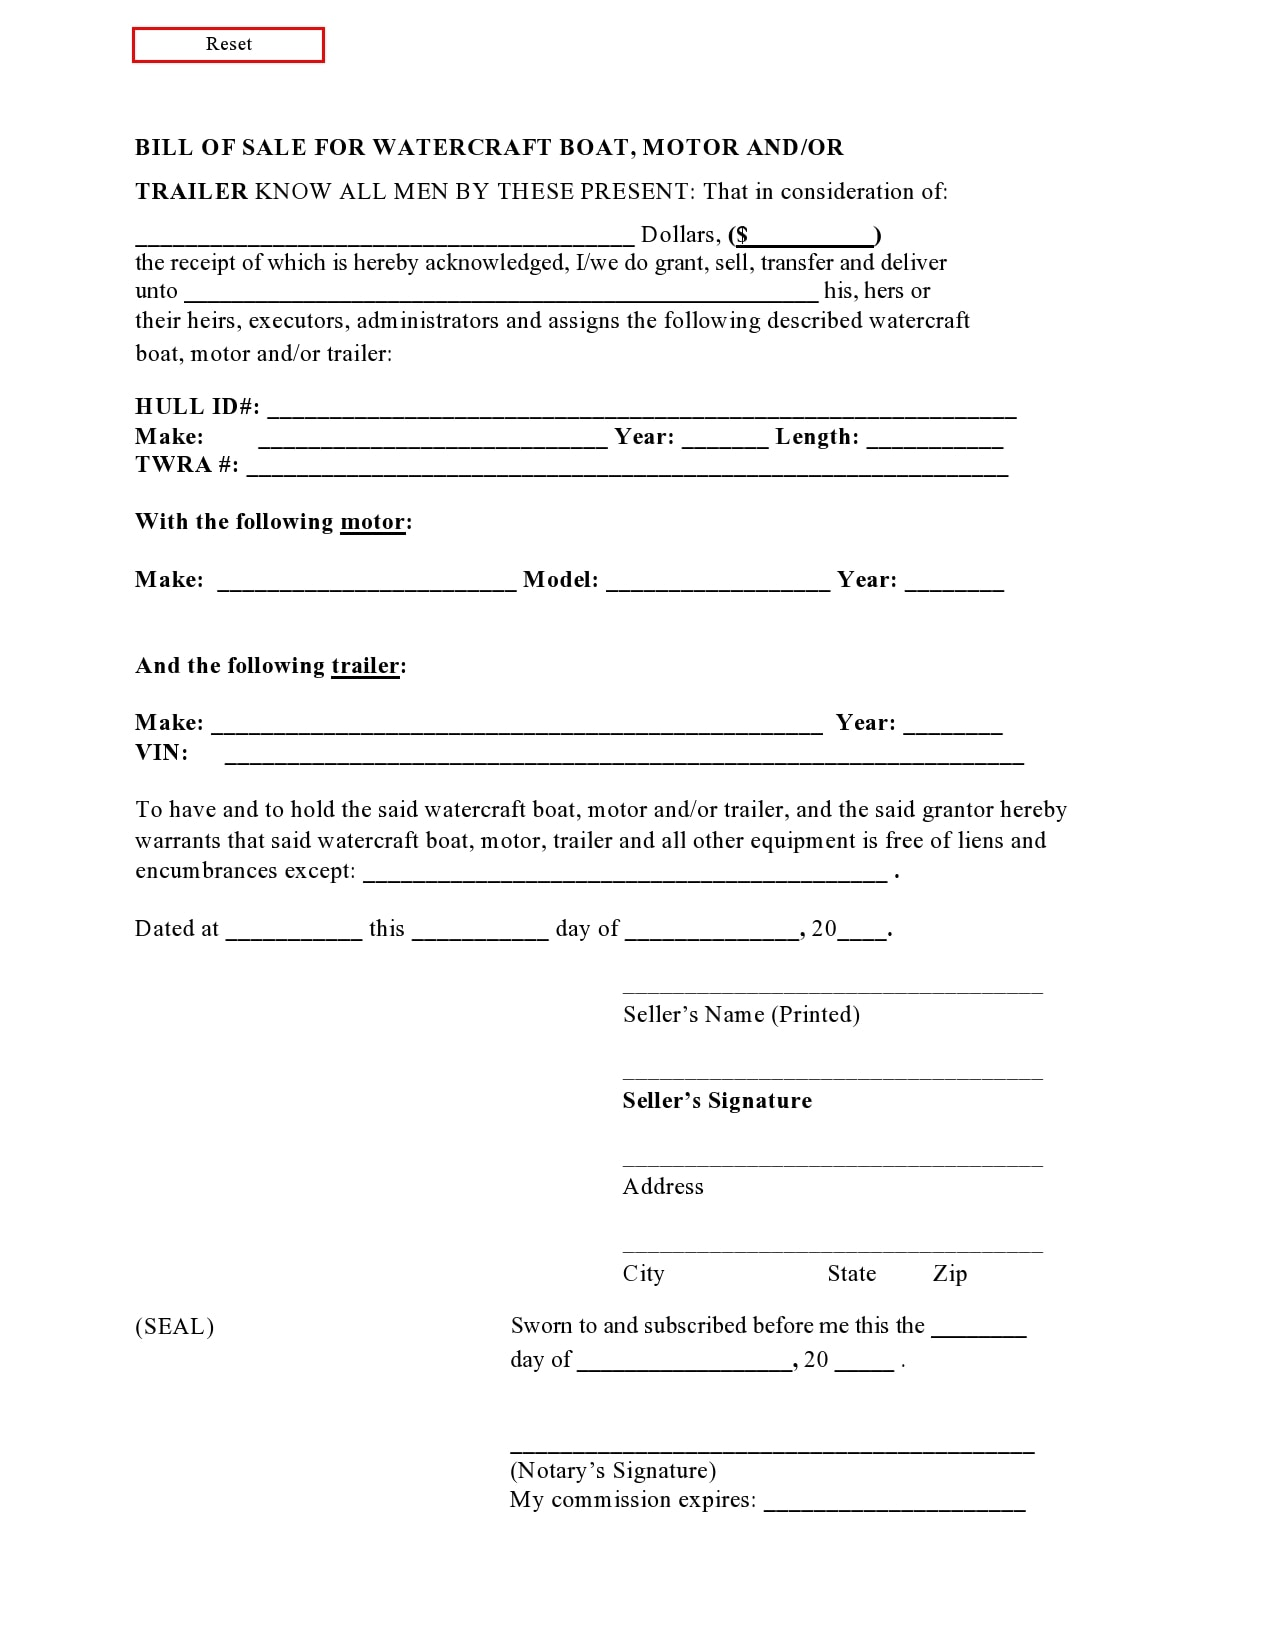 bill of sale for trailer 02